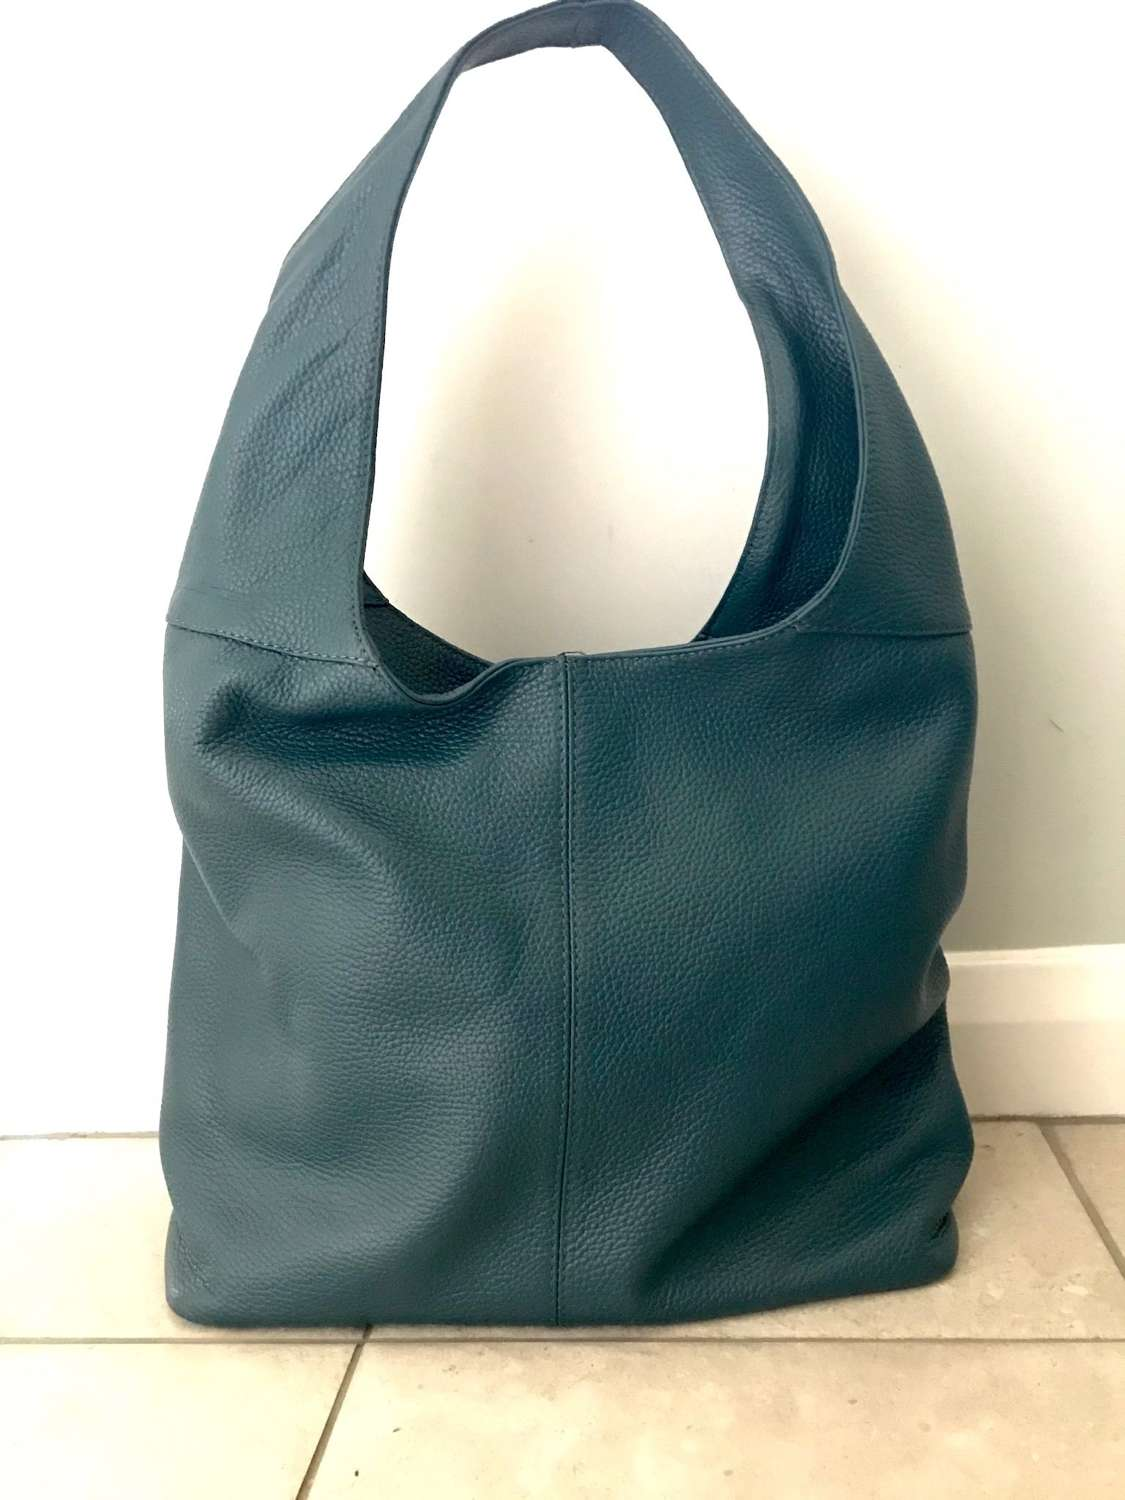 Leather shoulder bag - teal